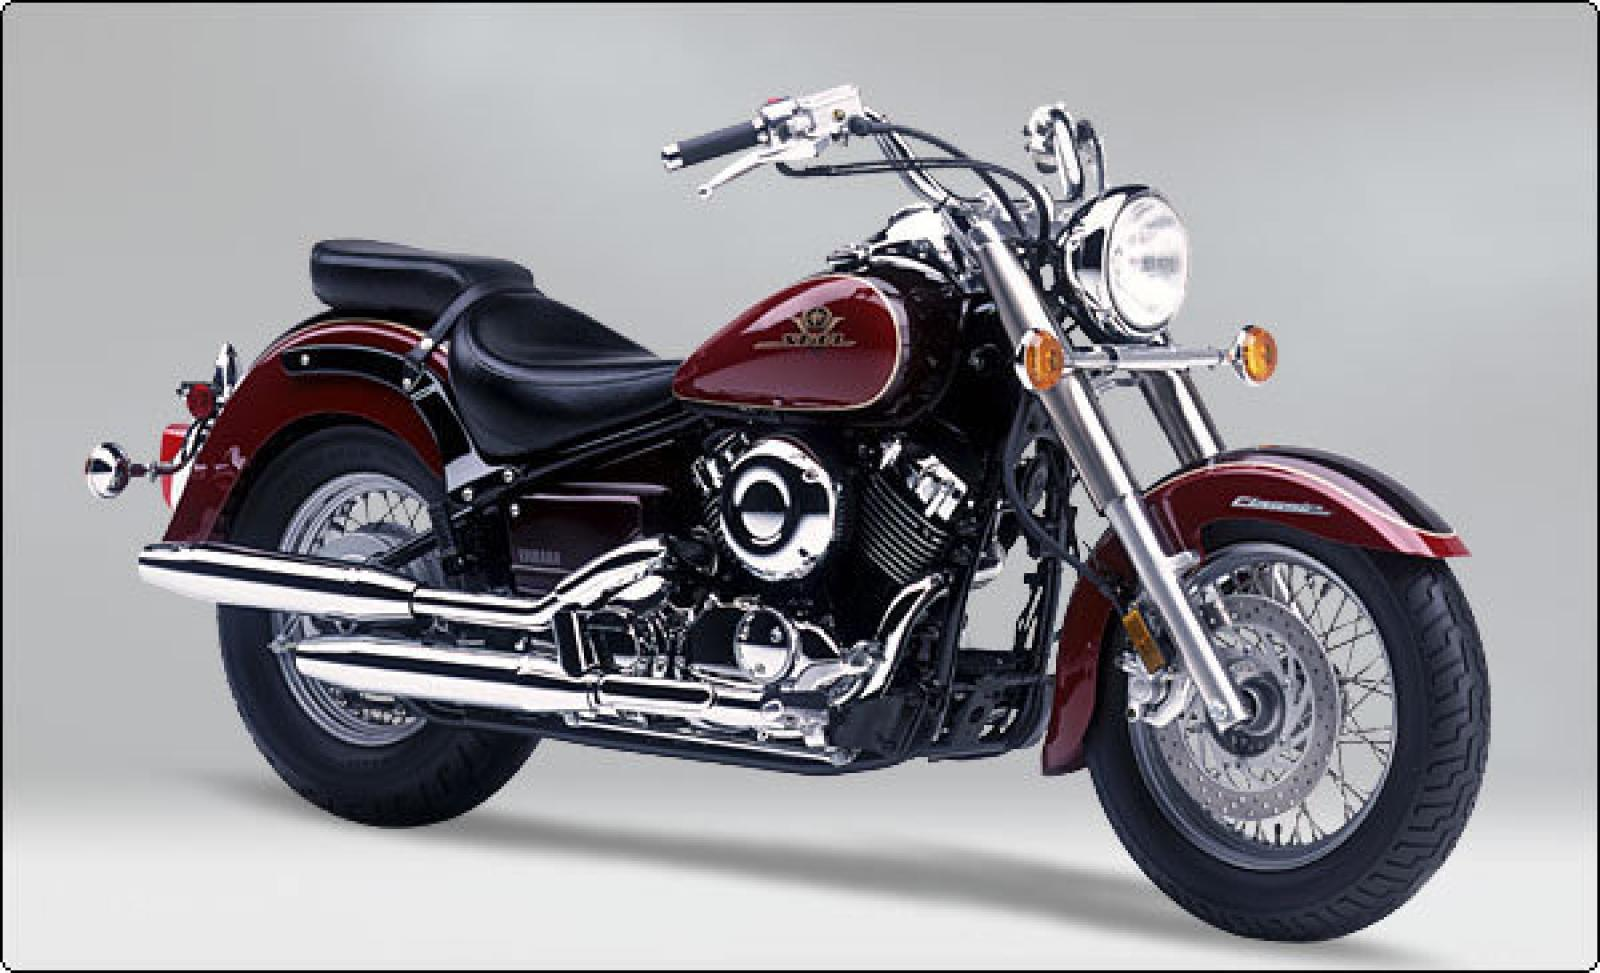 hight resolution of  yamaha v star 1100 custom 2008 5 28 2008 yamaha vstar 1100 manual 111137